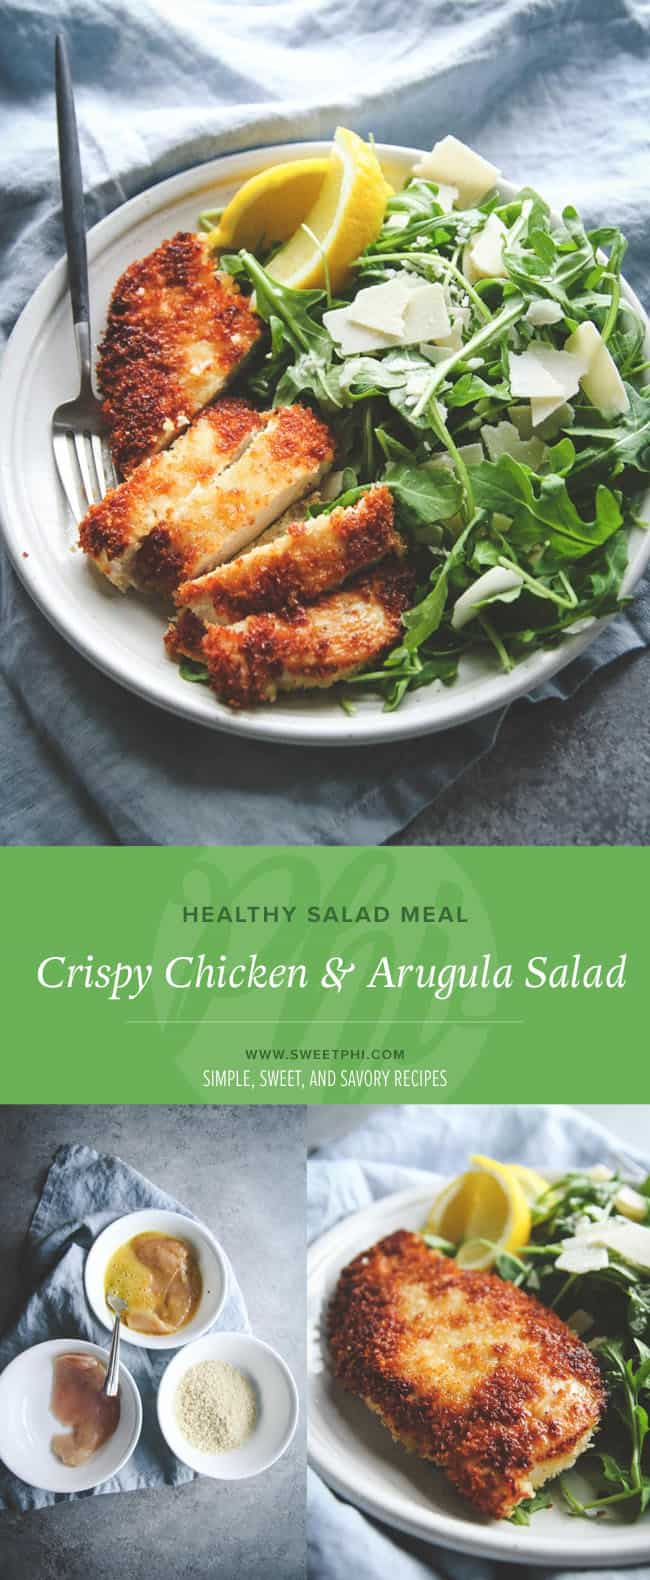 A super simple main meal that's healthy and delicious! A crispy chicken and arugula salad is the perfect meal to whip up.